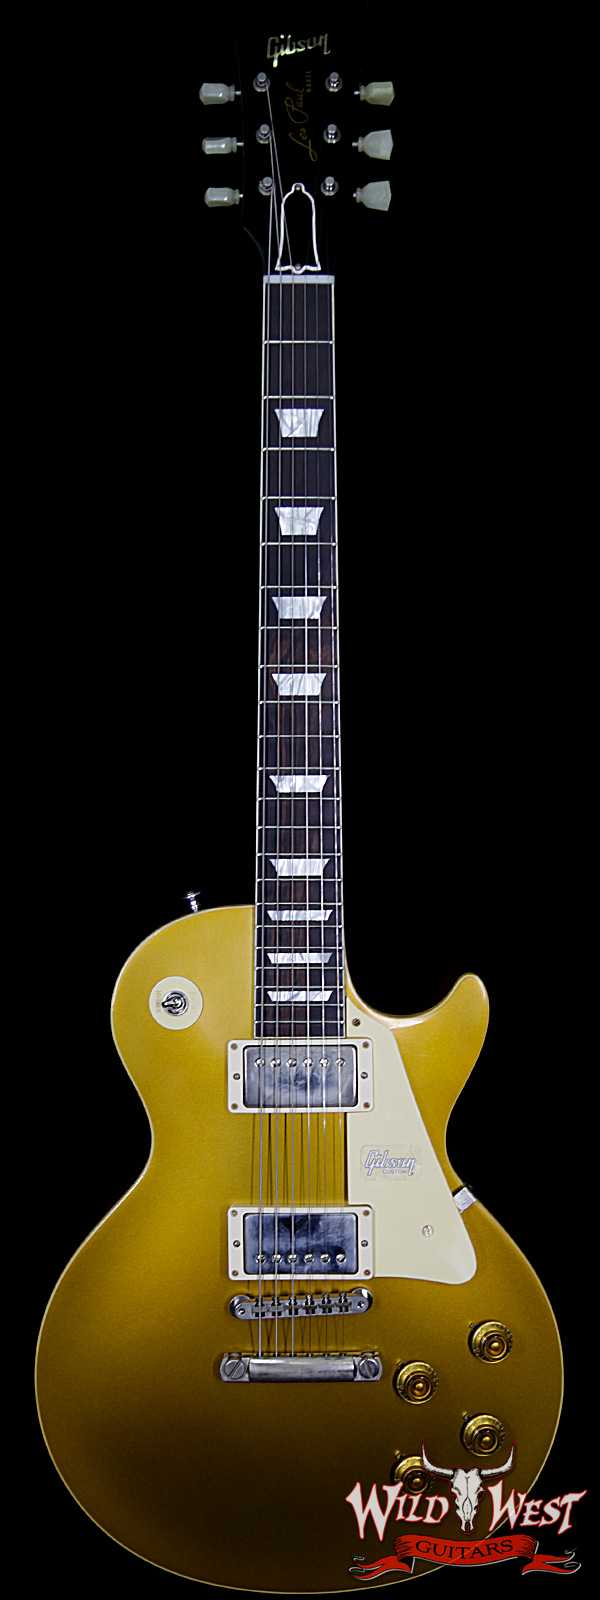 Gibson Custom Shop Historic 57 Les Paul Standard VOS Brazilian Rosewood Fingerboard Goldtop 9.25 Lbs